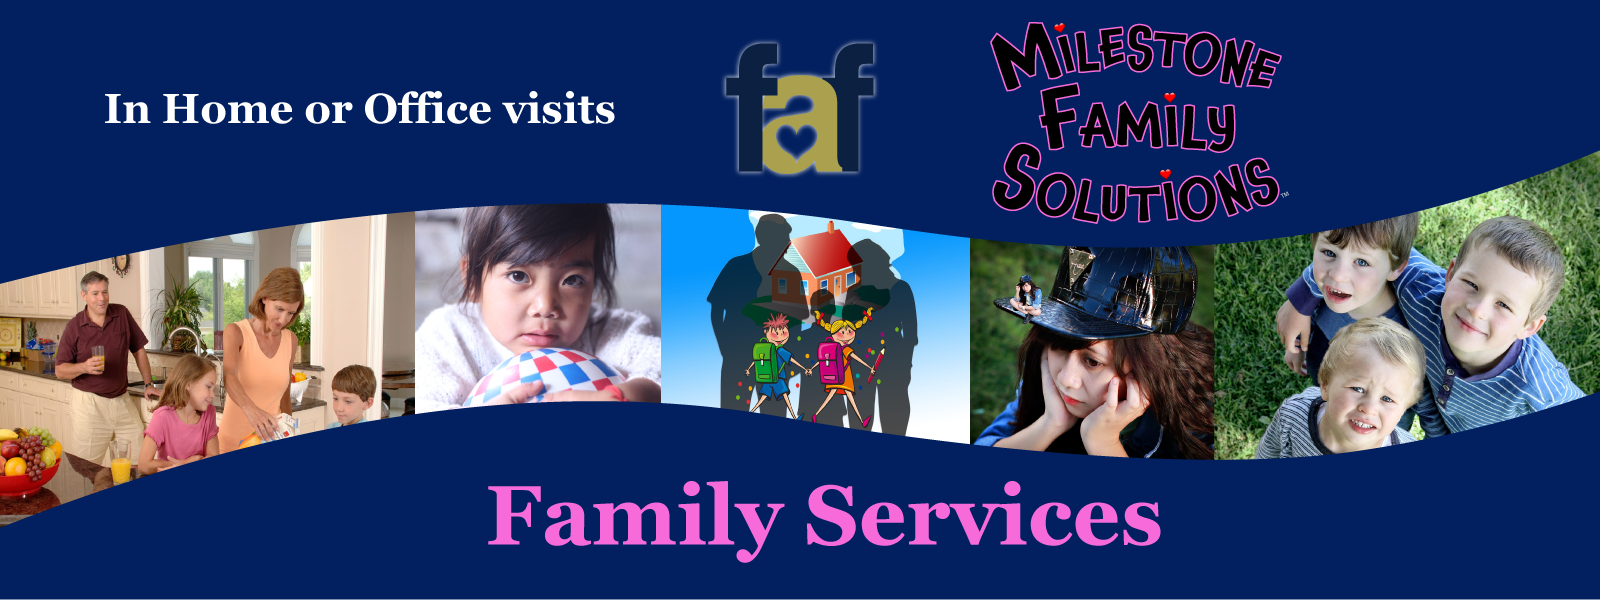 family services header